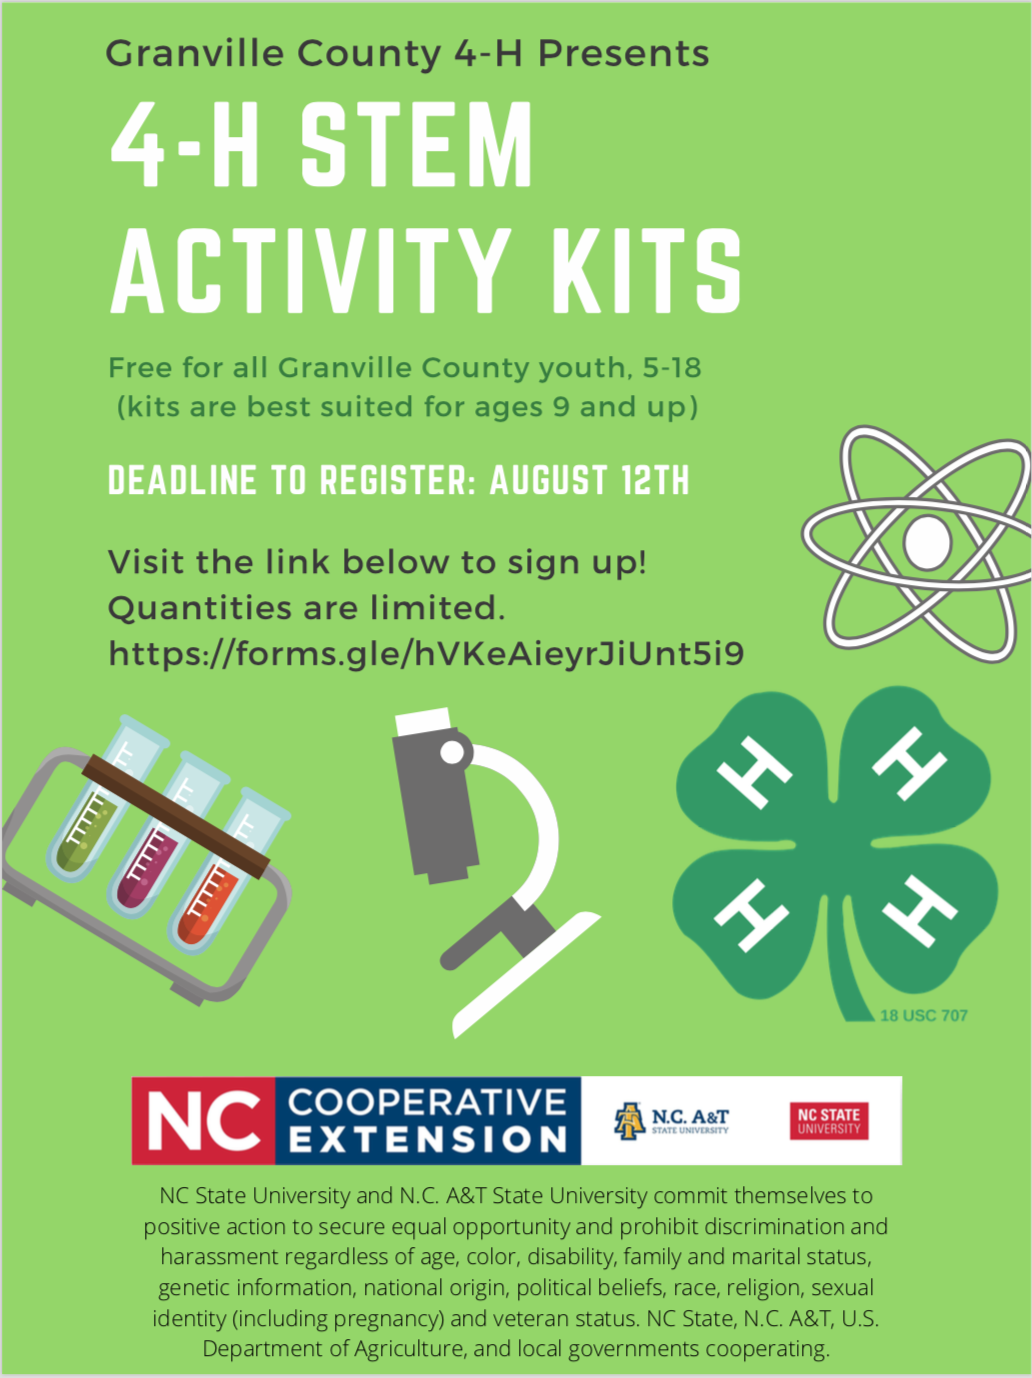 4-H STEM activity kits